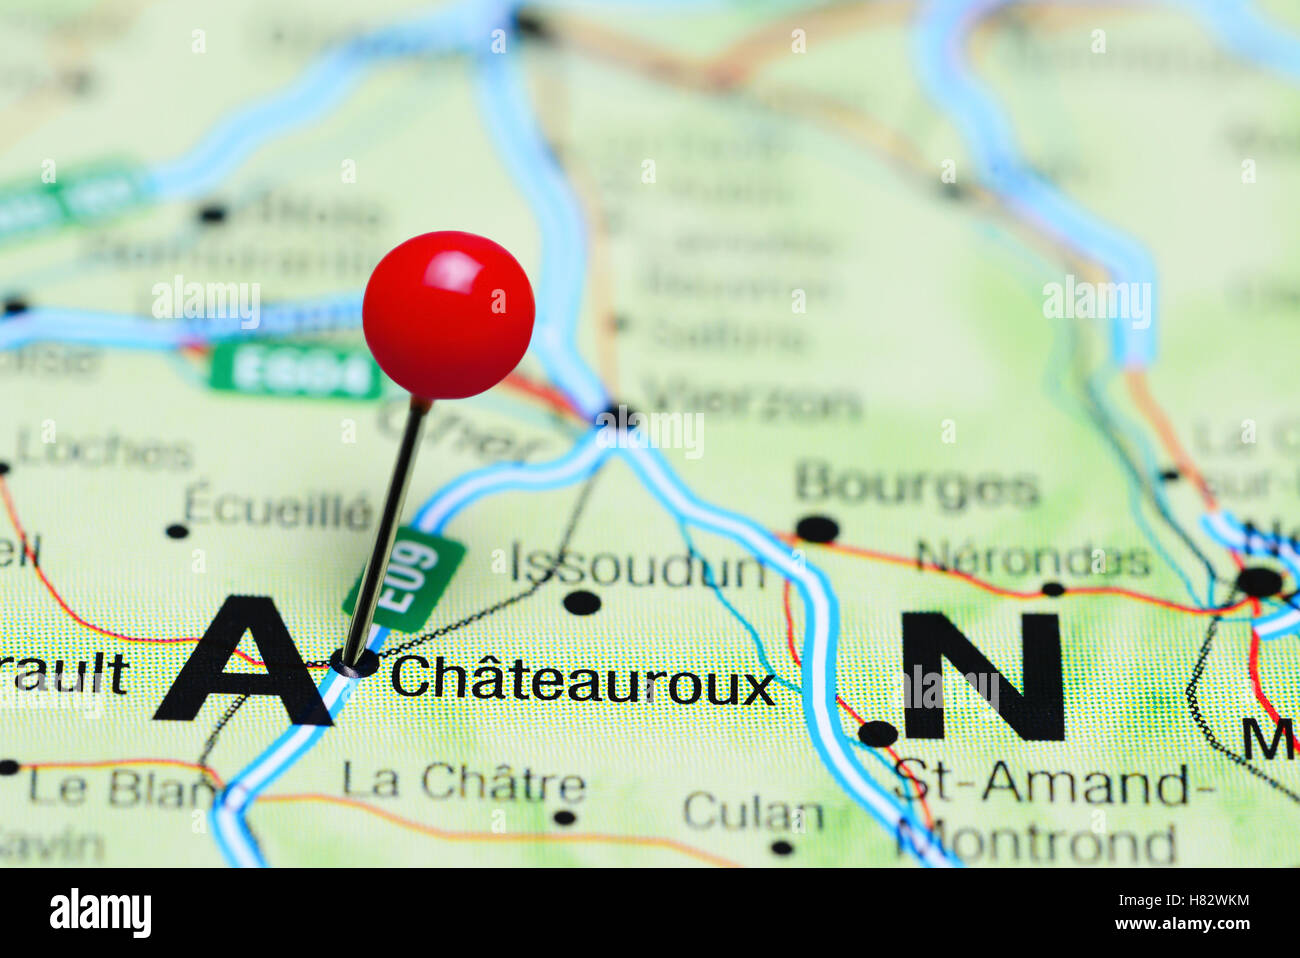 Chateauroux pinned on a map of France Stock Photo: 125453880   Alamy